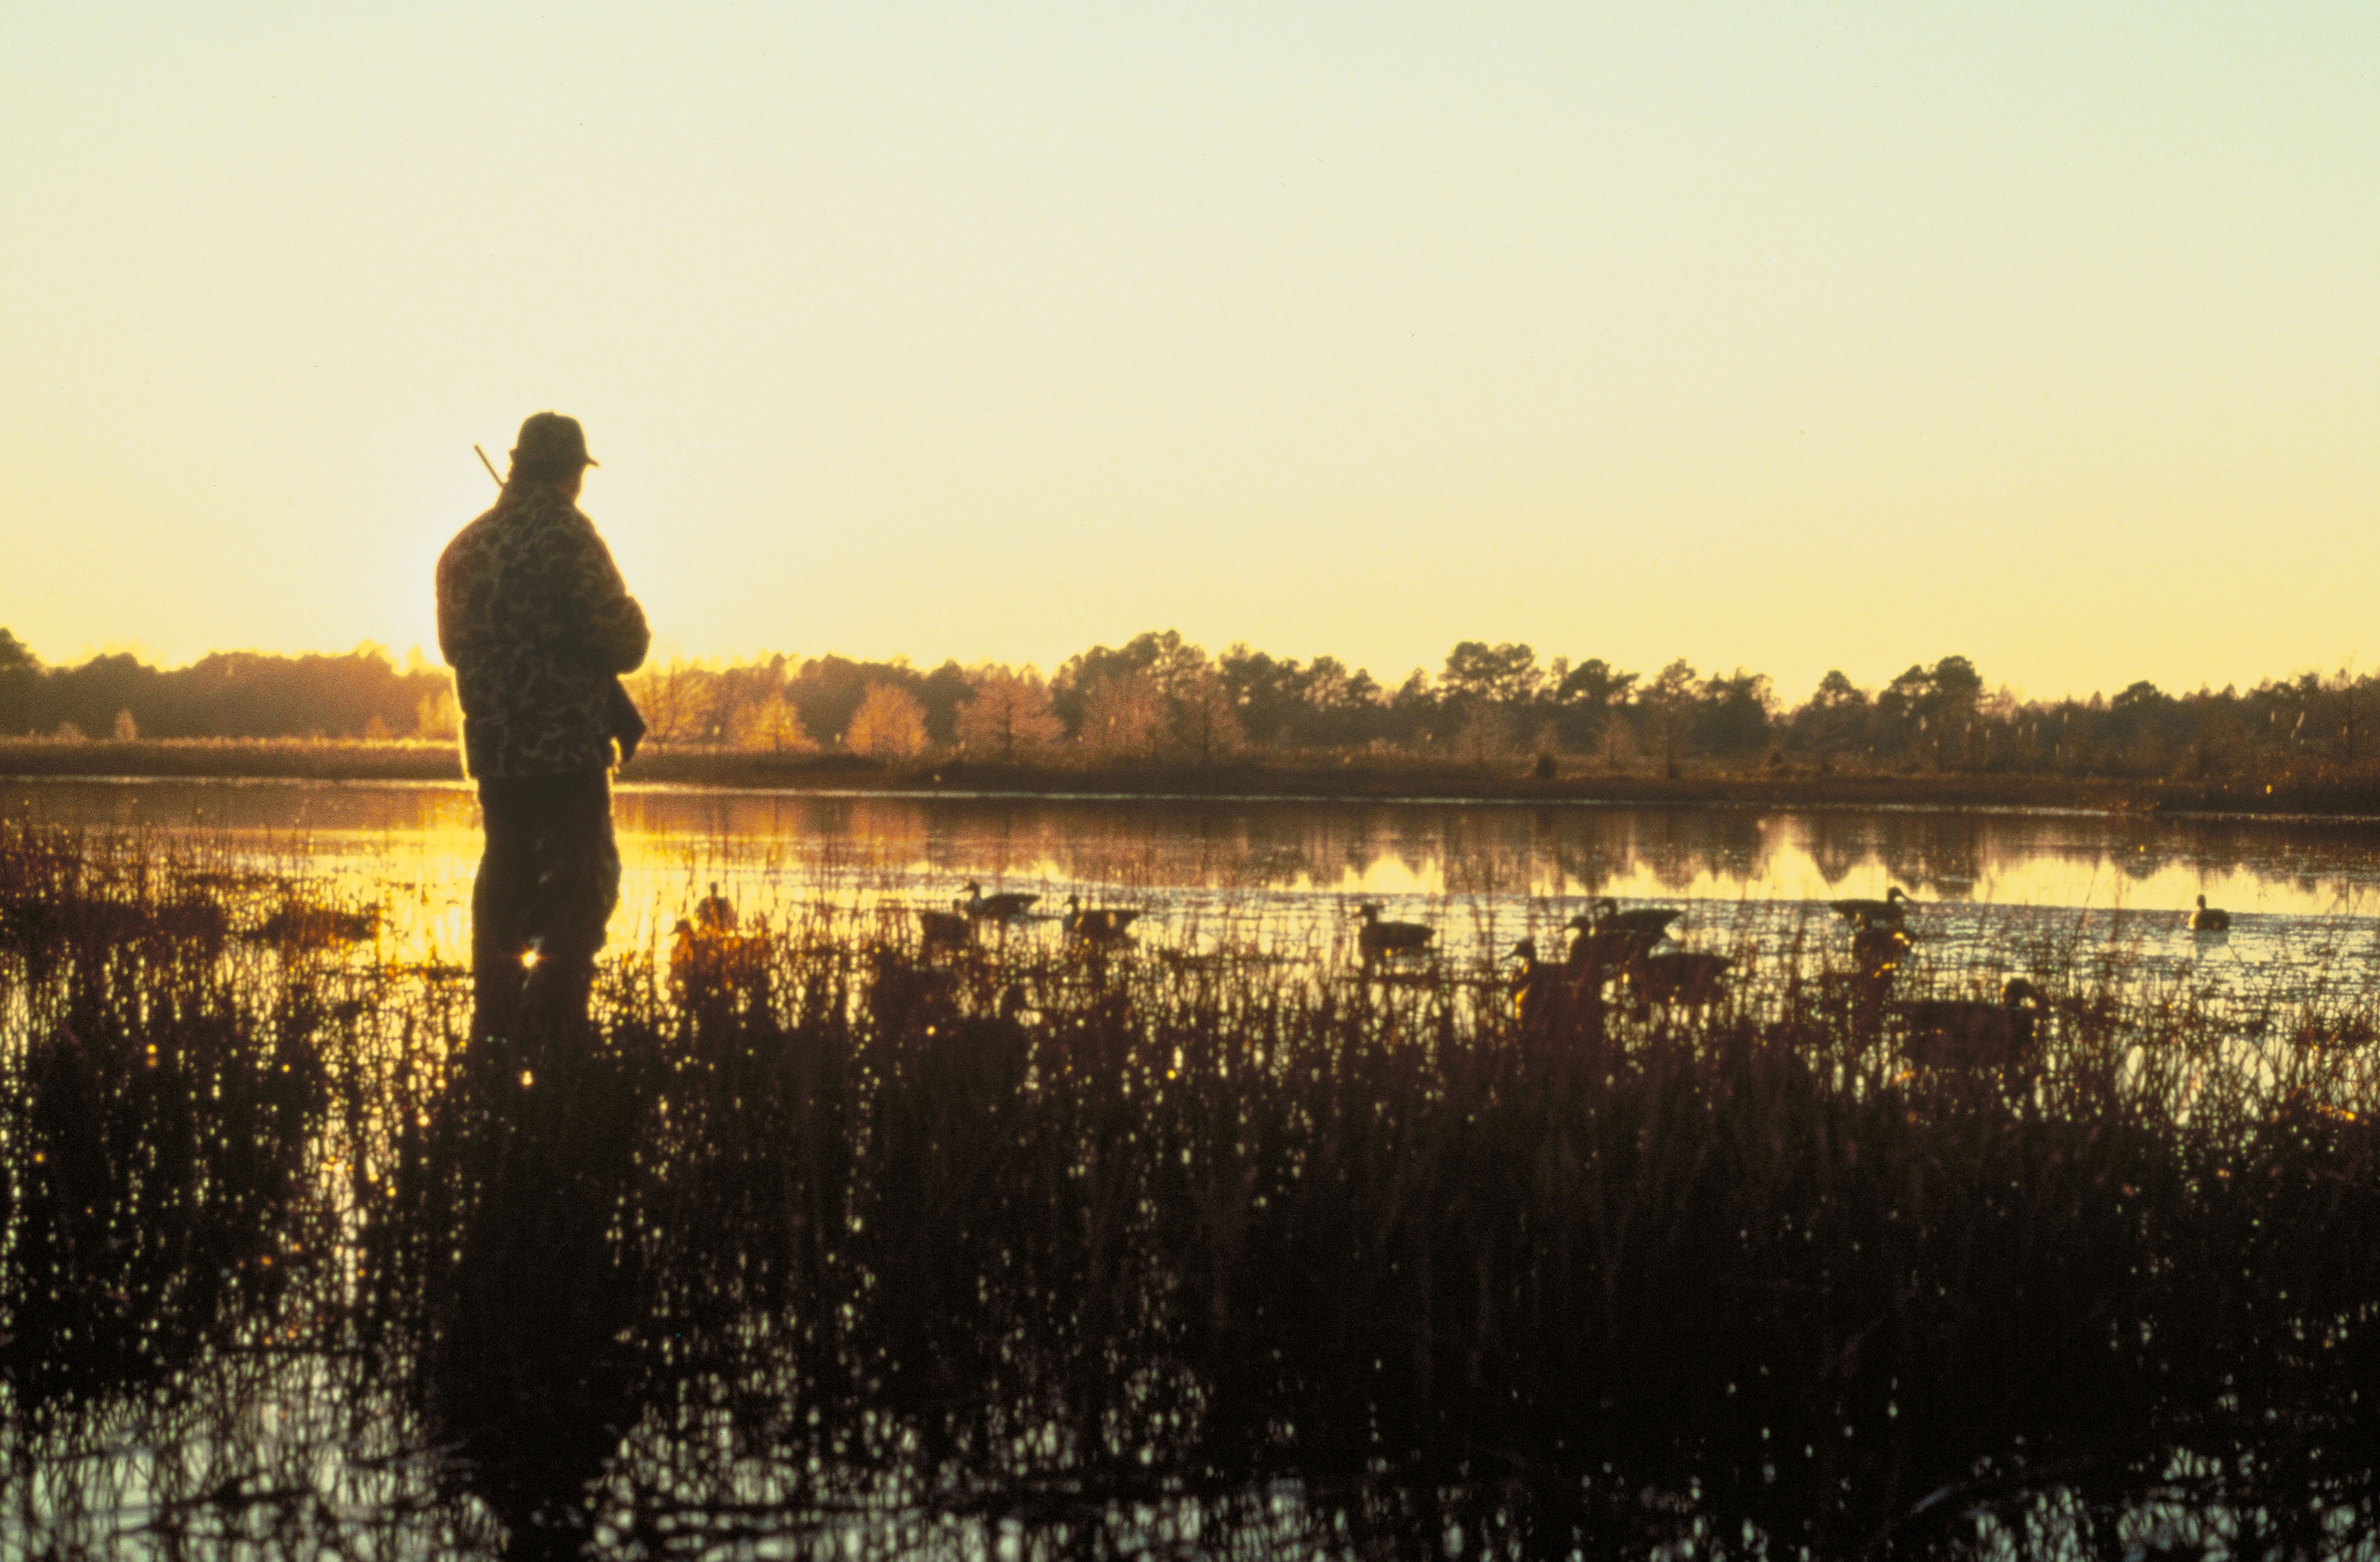 Hunting And Fishing Background Waterfowl hunting at dusk 3658x2400